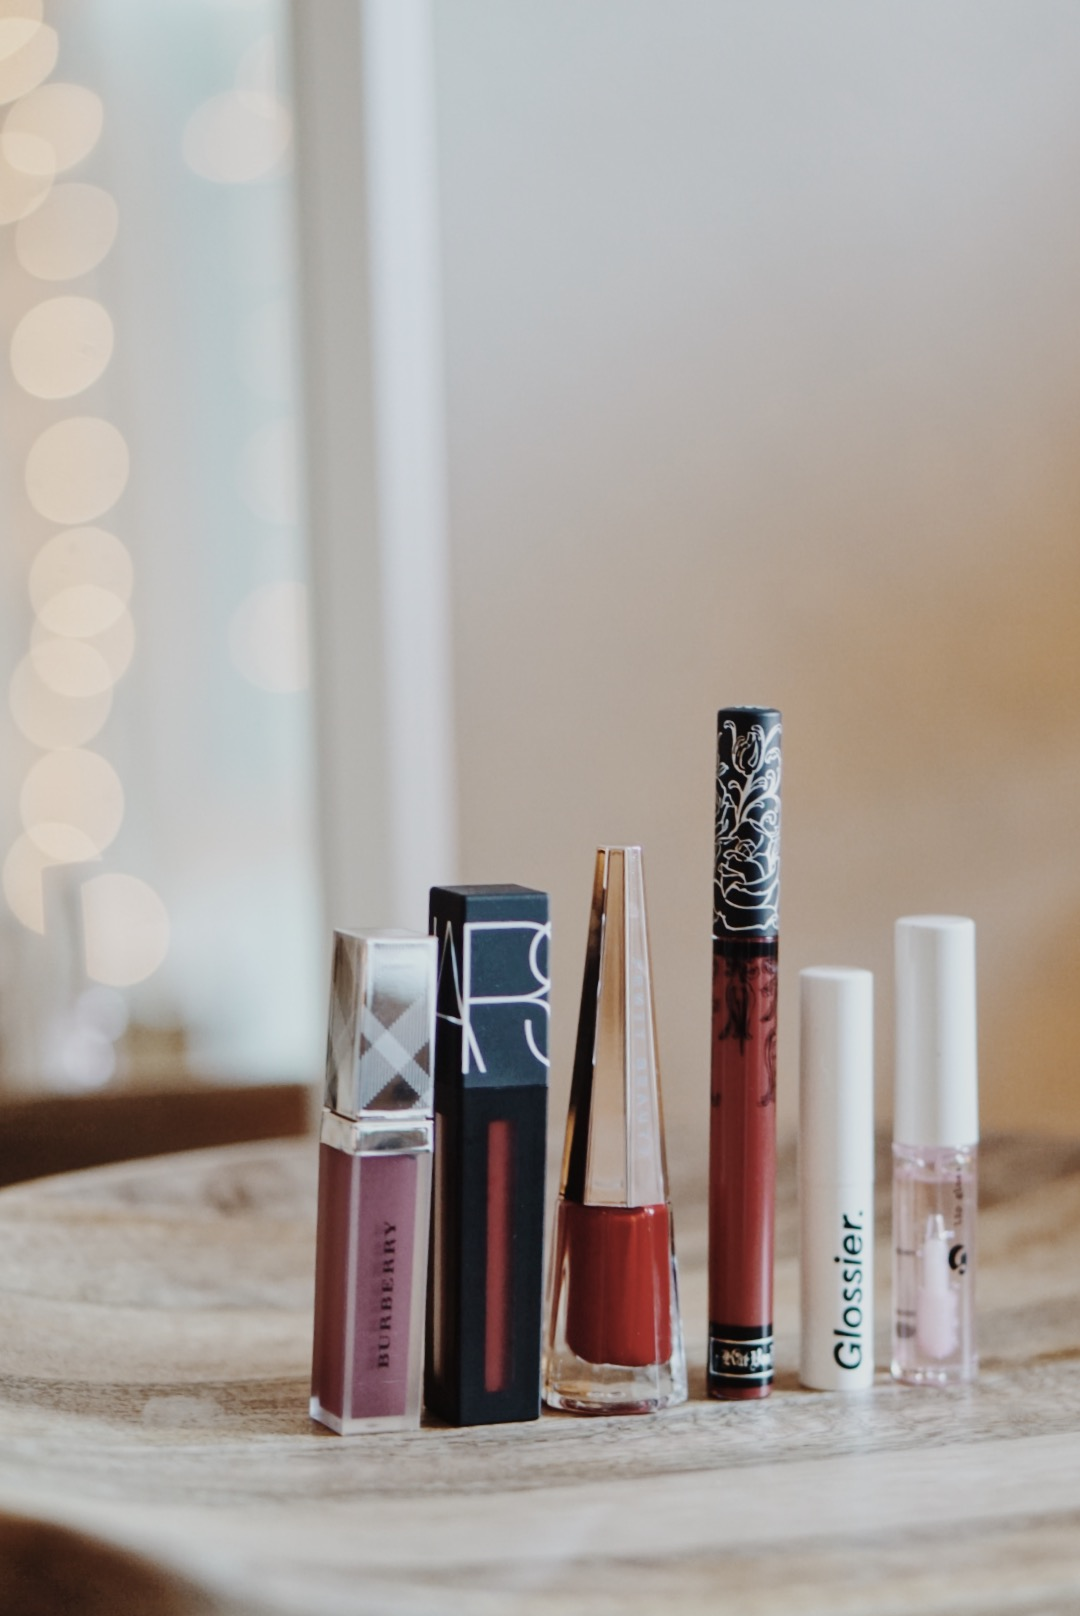 Holiday Red Lipstick Options - Burberry, NARS, Kat Von D, Glossier